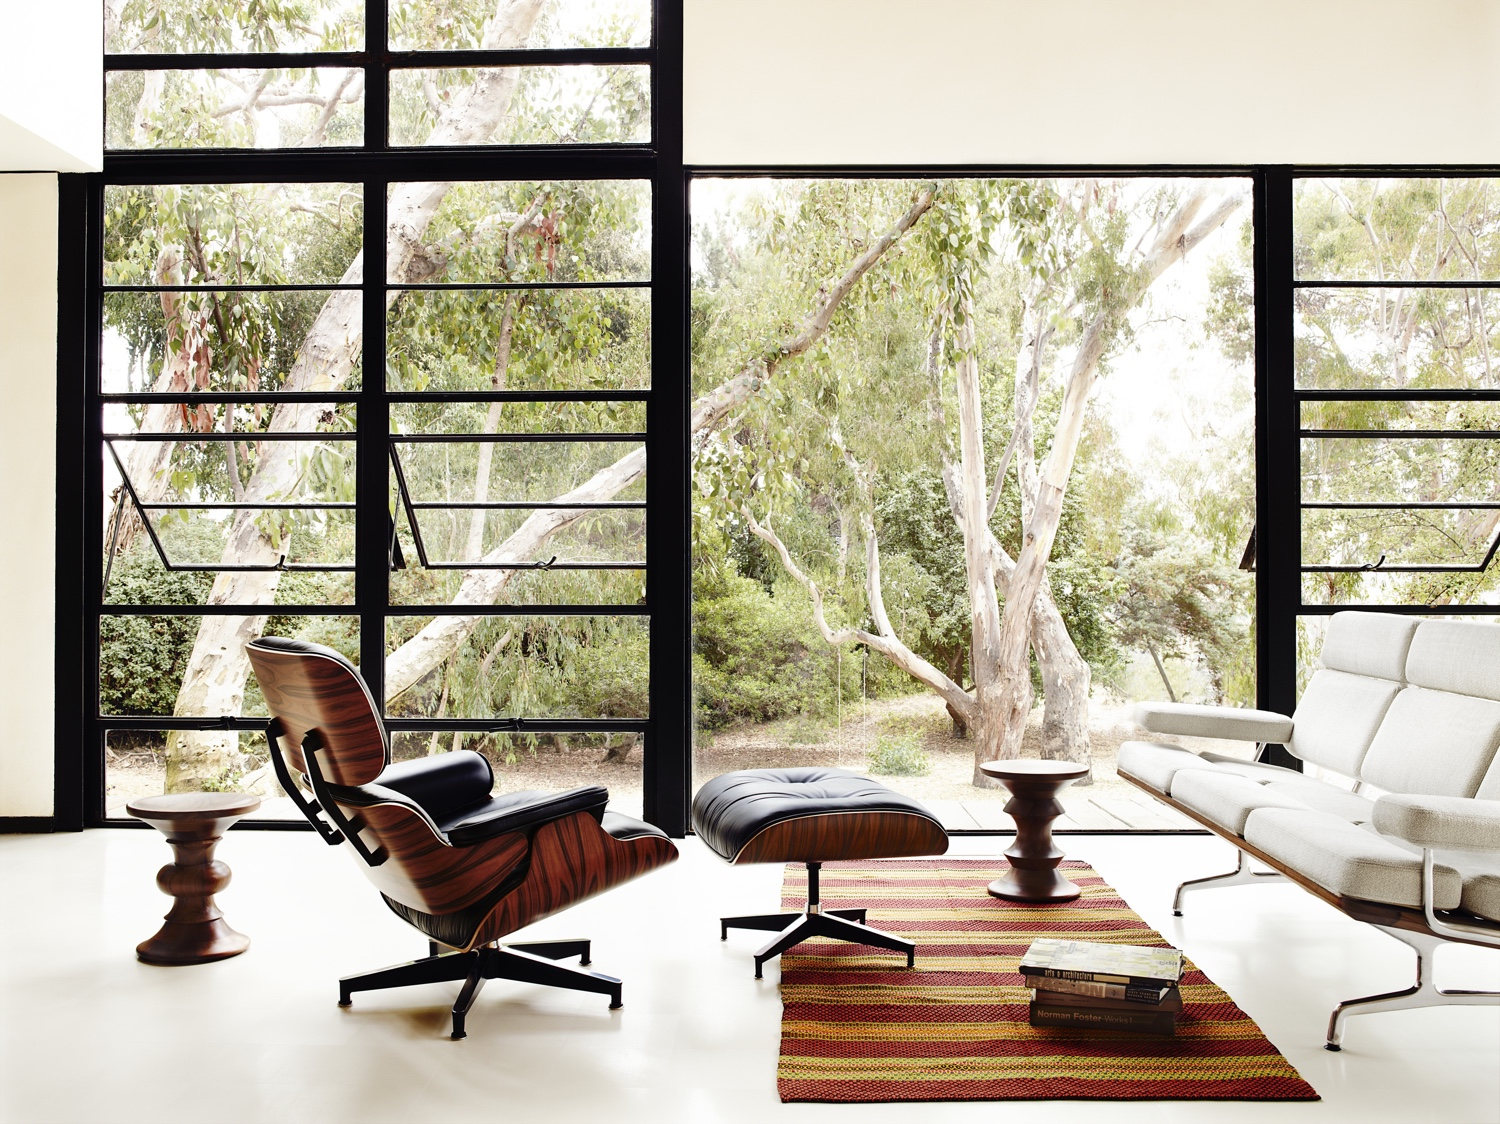 The Eames Lounge Chair and Ottoman in the Eames House (alongside the classic Eames sofa and Walnut Stools). Image © 2016 Herman Miller, Inc.